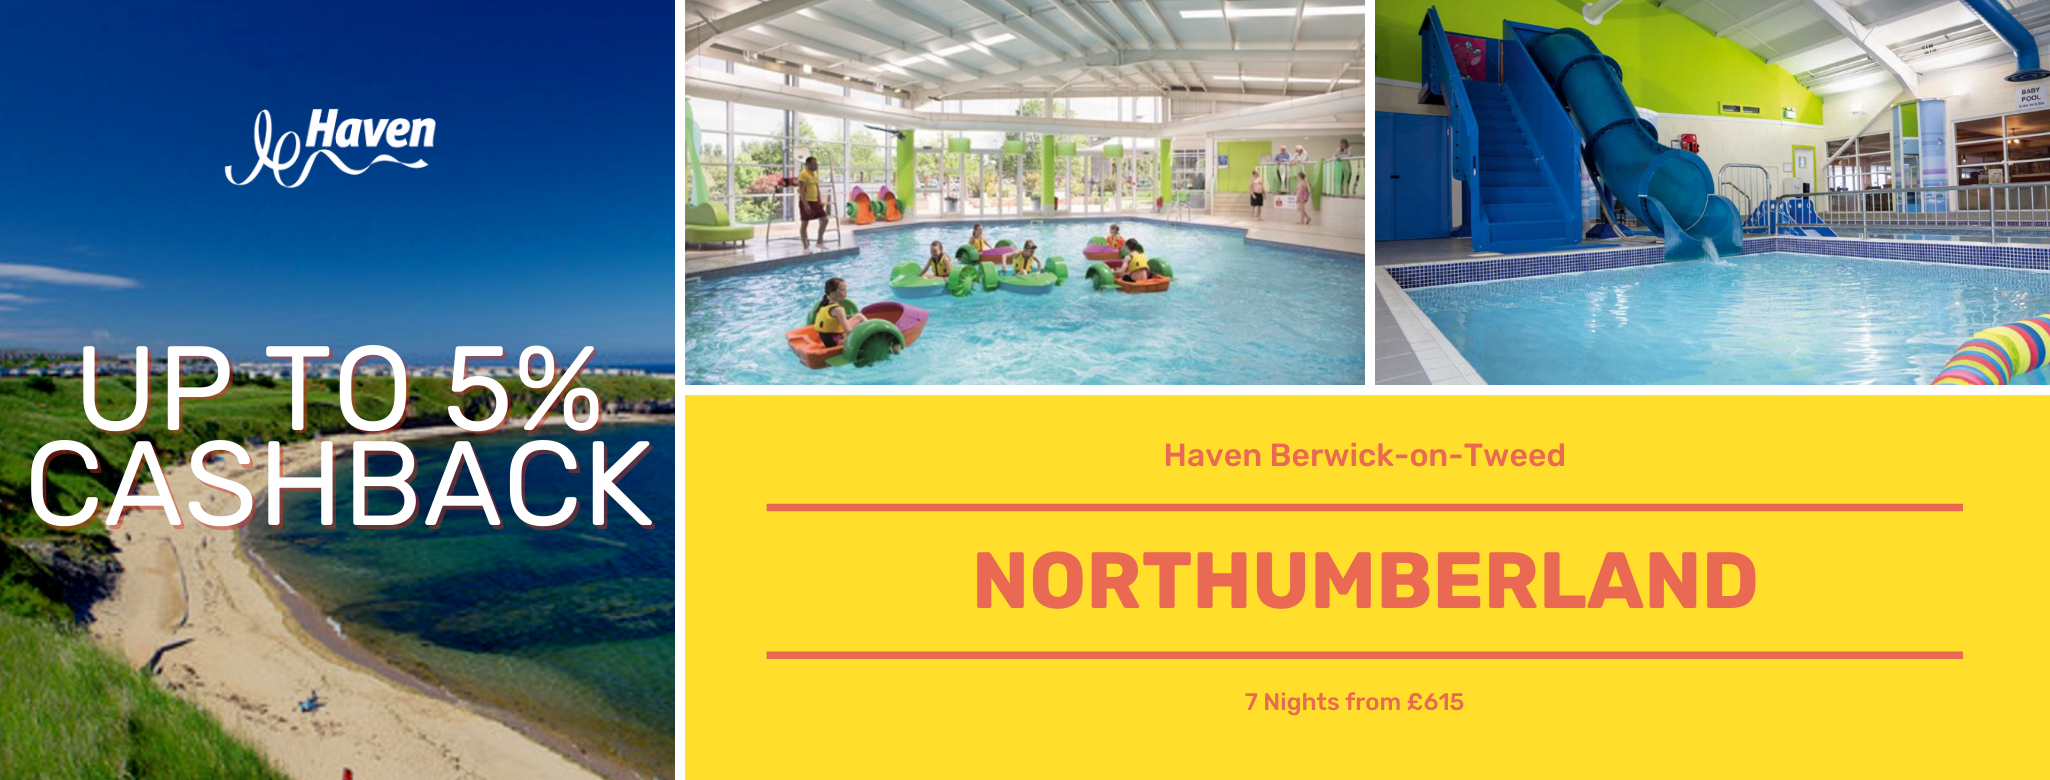 Haven Holiday Northmberland Up to 5% Cashback